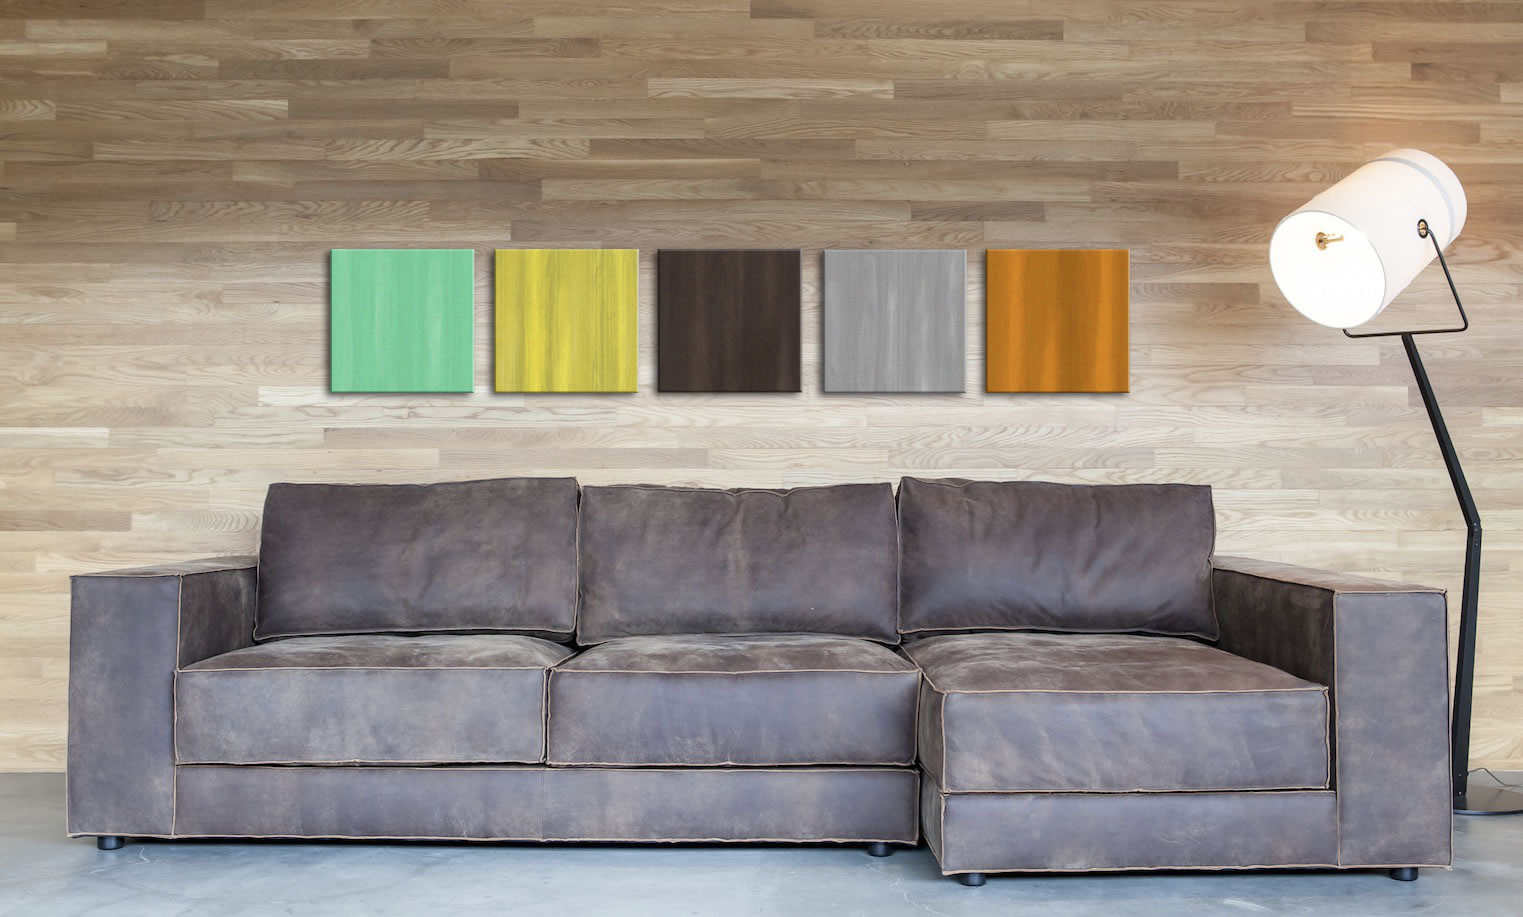 Oceanside - Colorful Contemporary Accents by Celeste Reiter - Lifestyle Image